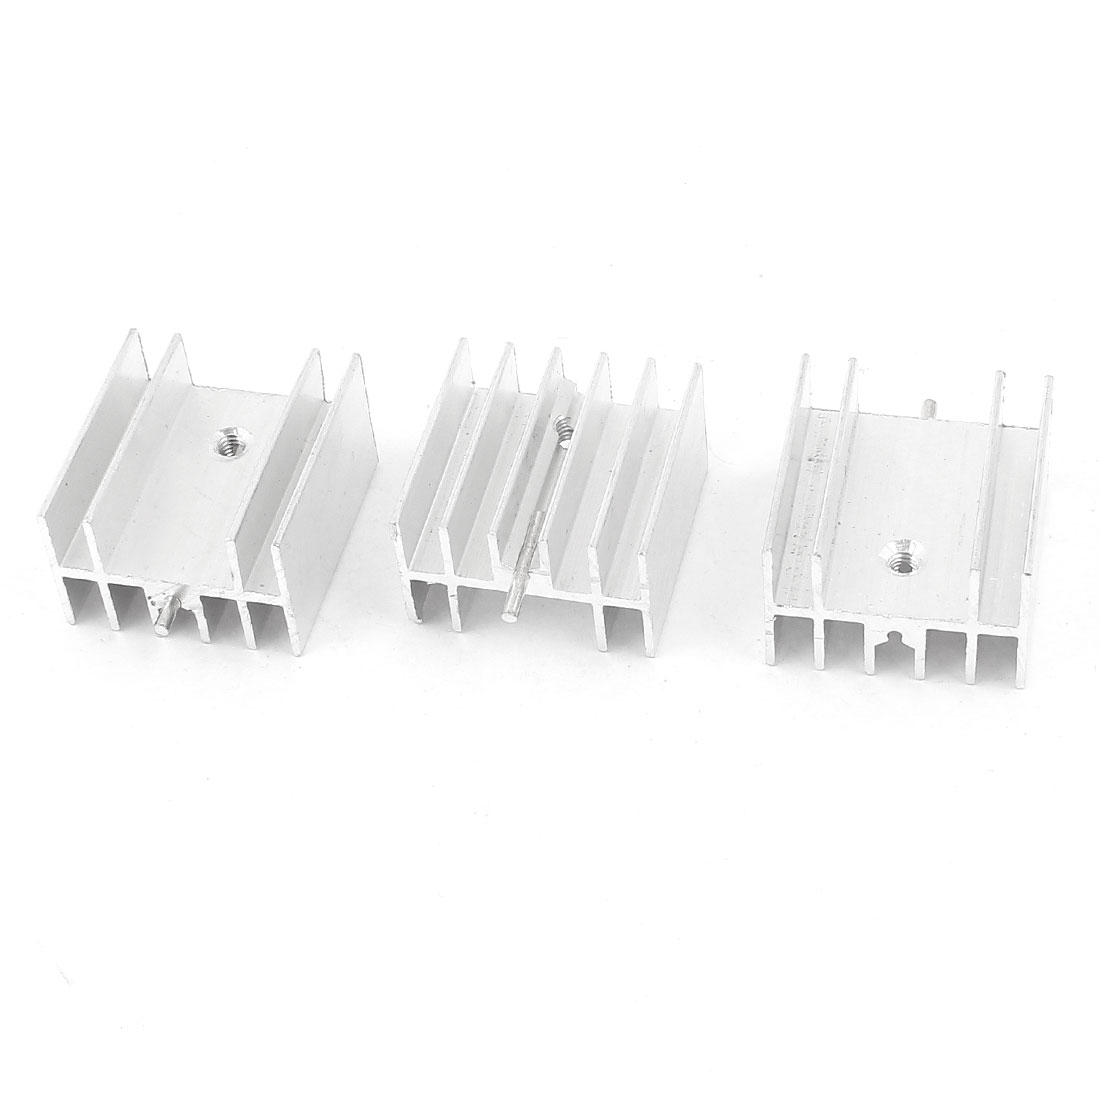 3 Pcs Silver Tone Aluminum Heat Sink 25x23x16mm for TO-220 Transistors